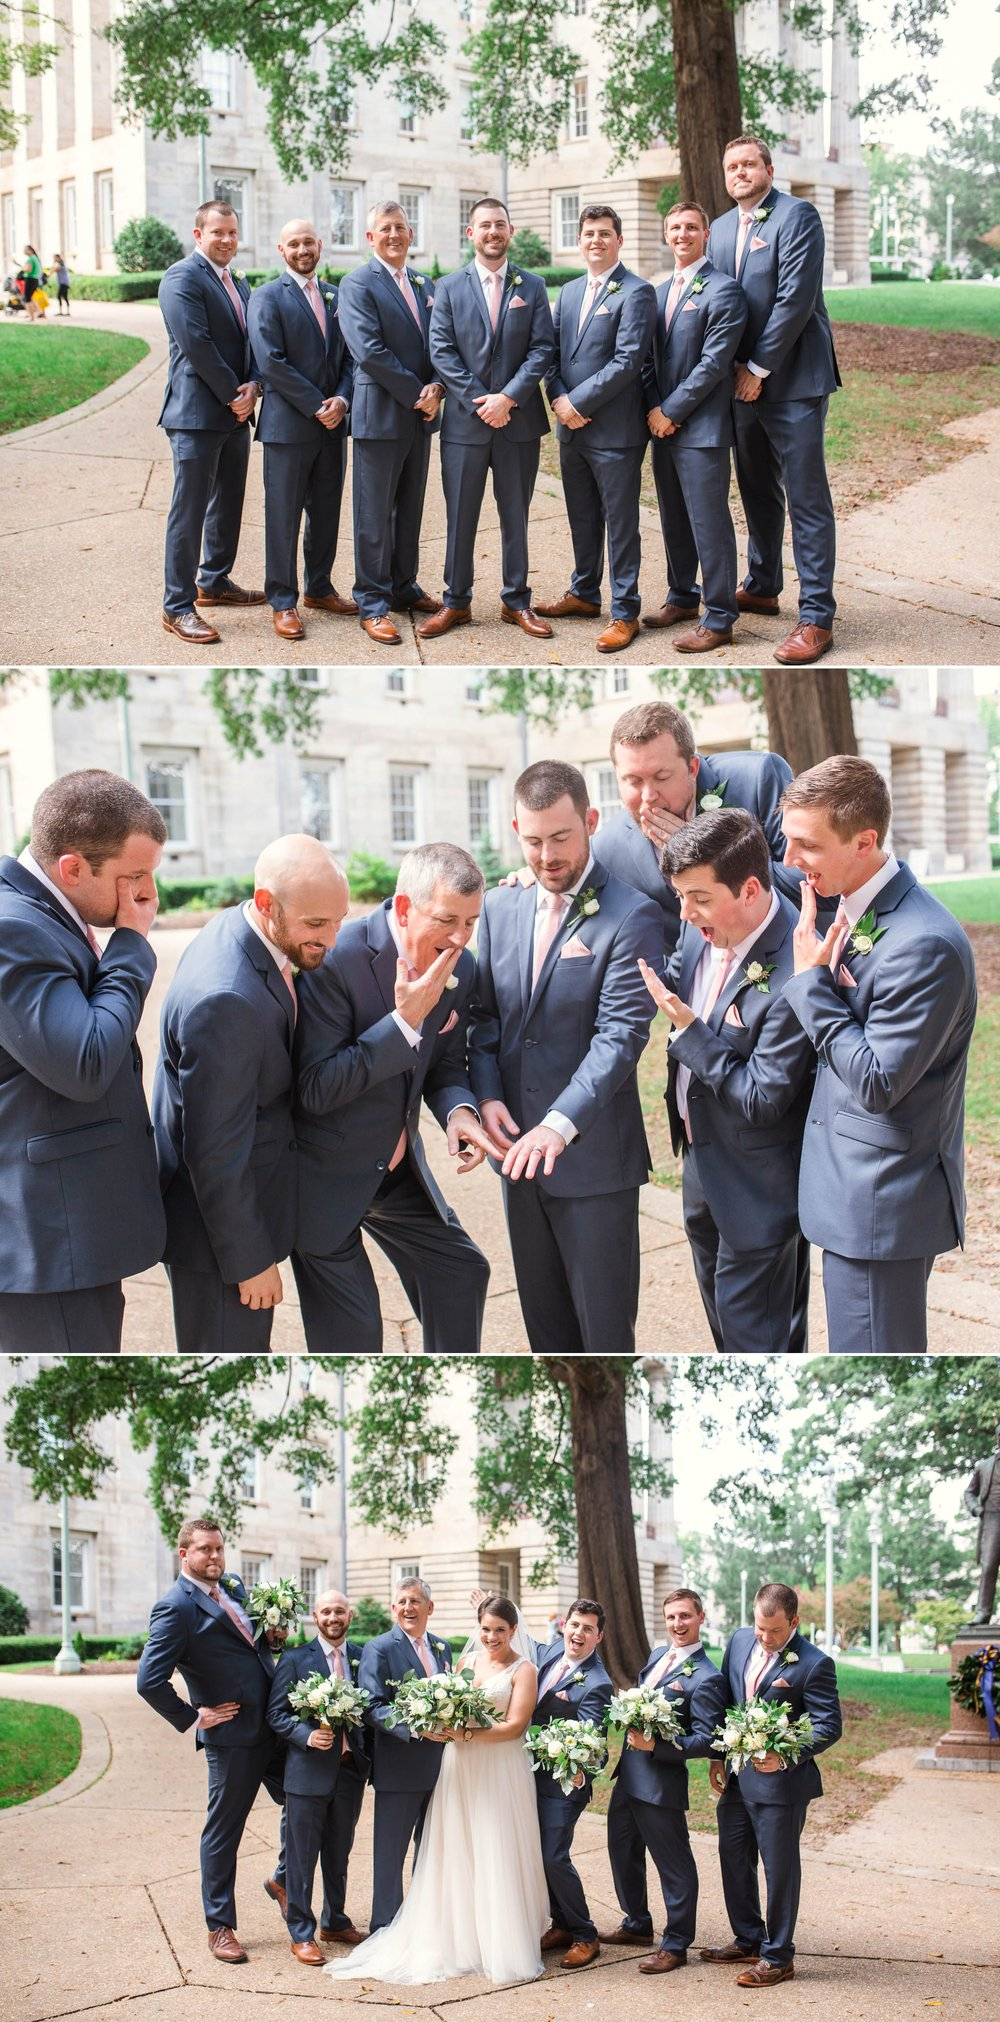 Groomsmen Portraits downtown moore square - Clare + Wallace - The Jiddy Space - Raleigh North Carolina Wedding Photographer